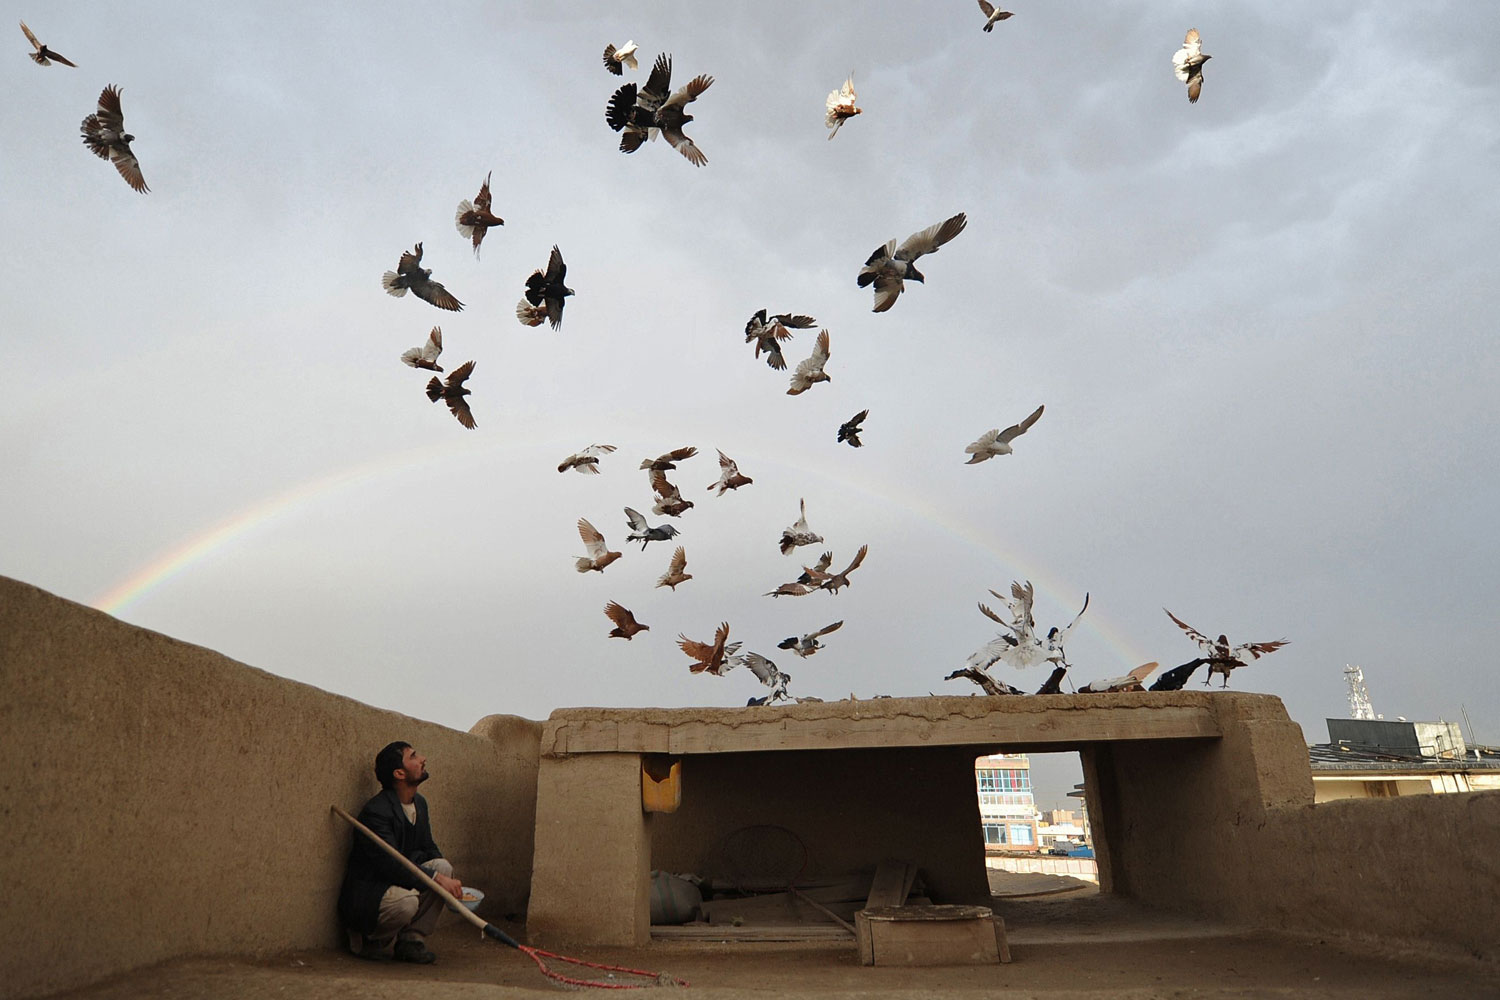 Withdrawl From Afghanistan                                Feb. 19, 2012. An Afghan man watches pigeons on the roof of his house as a rainbow forms in the background in Mazar-i Sharif, Afghanistan.